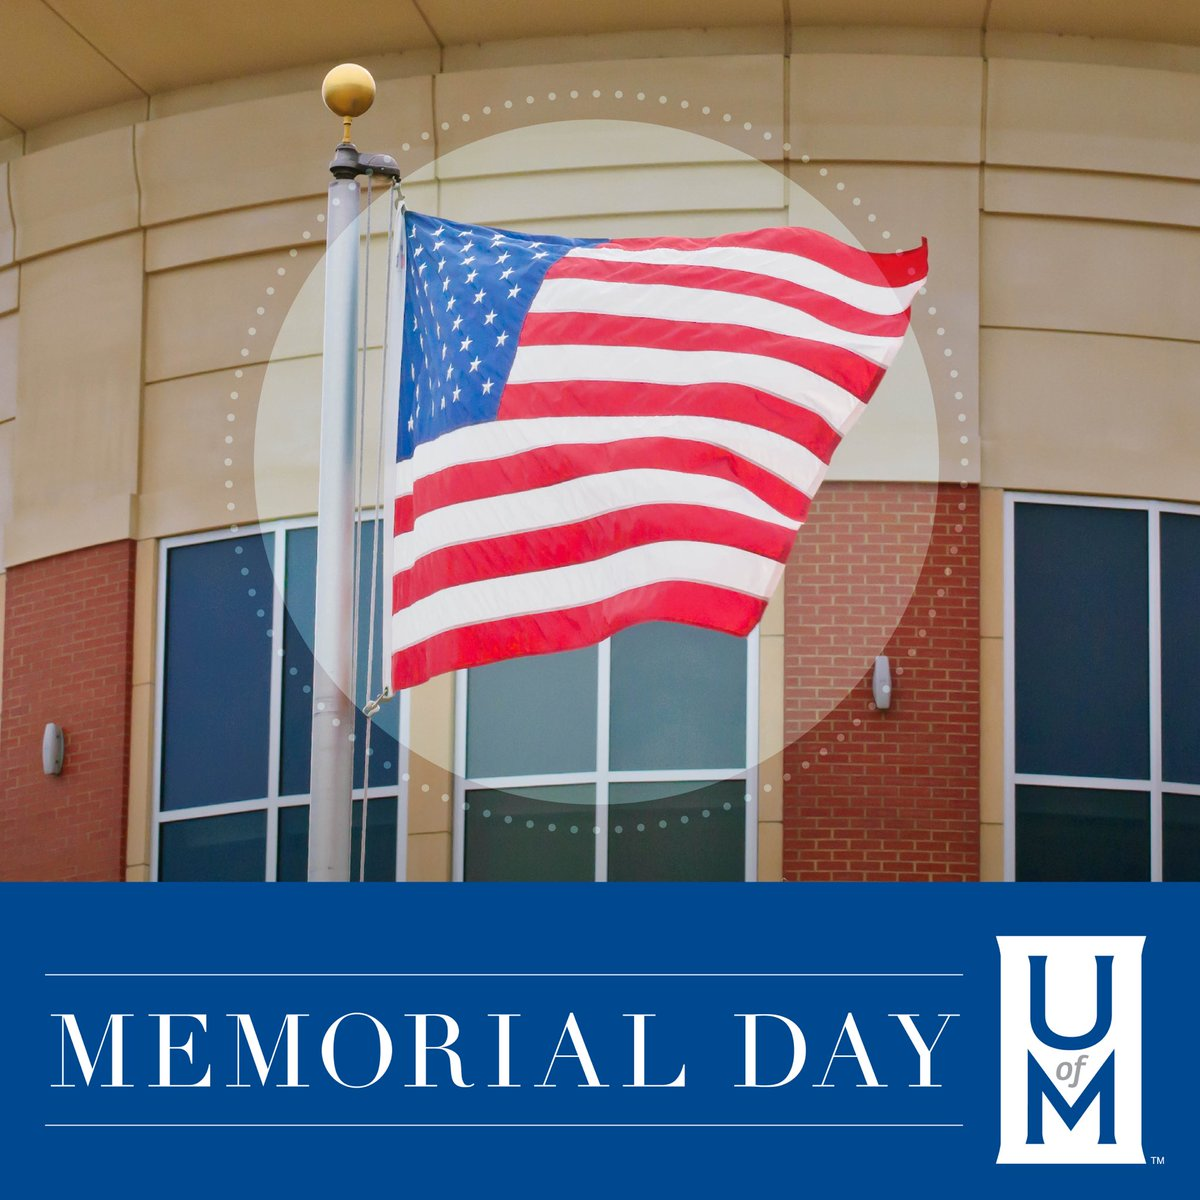 Honoring those that made the ultimate sacrifice in service of our nation.